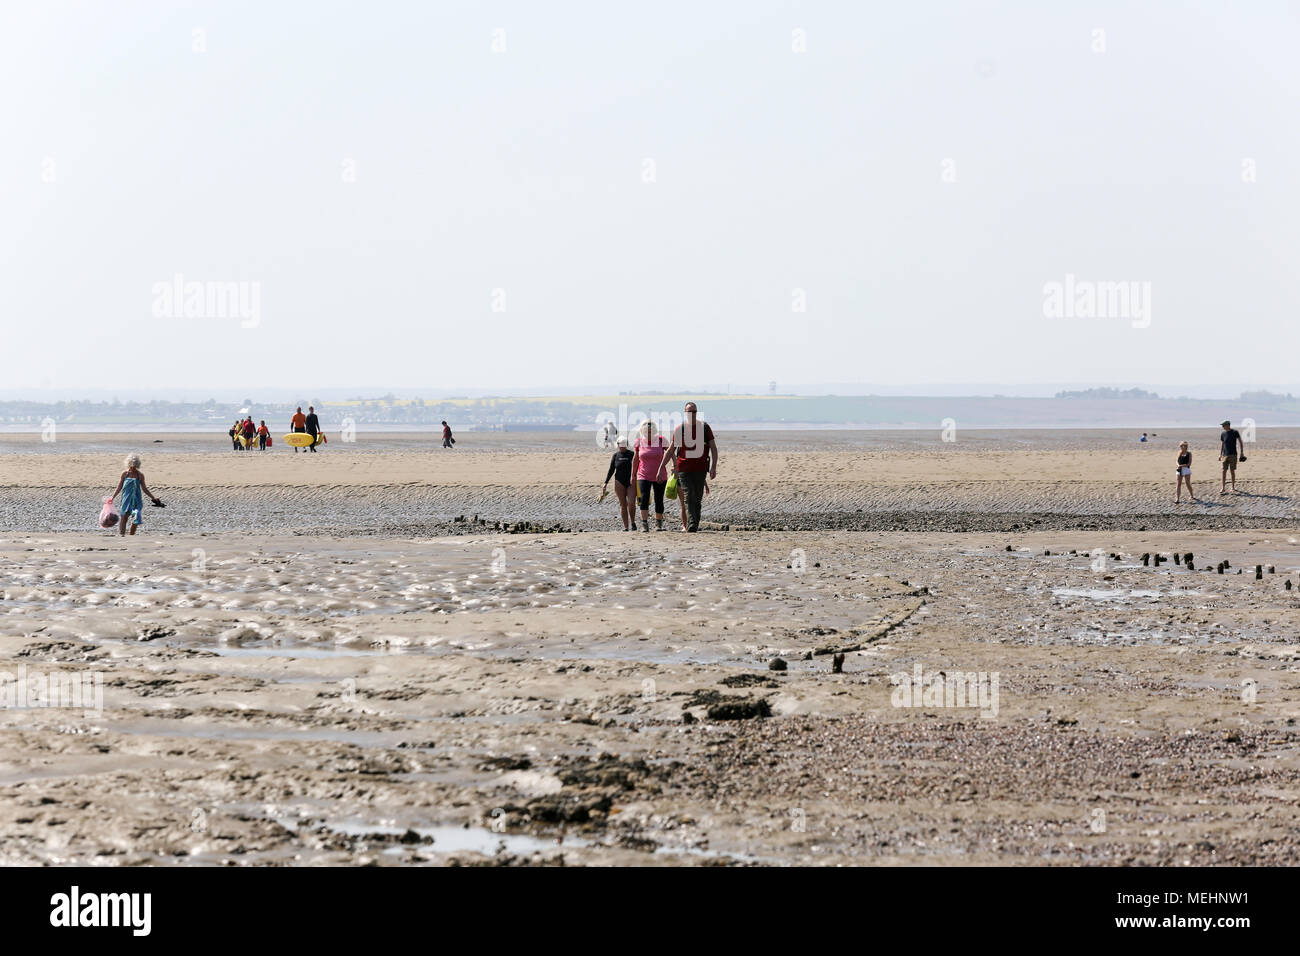 Uk Weather A Beautiful Day In The Escoastal Town Of Southend On Sea Penelope Barritt Alamy Live News